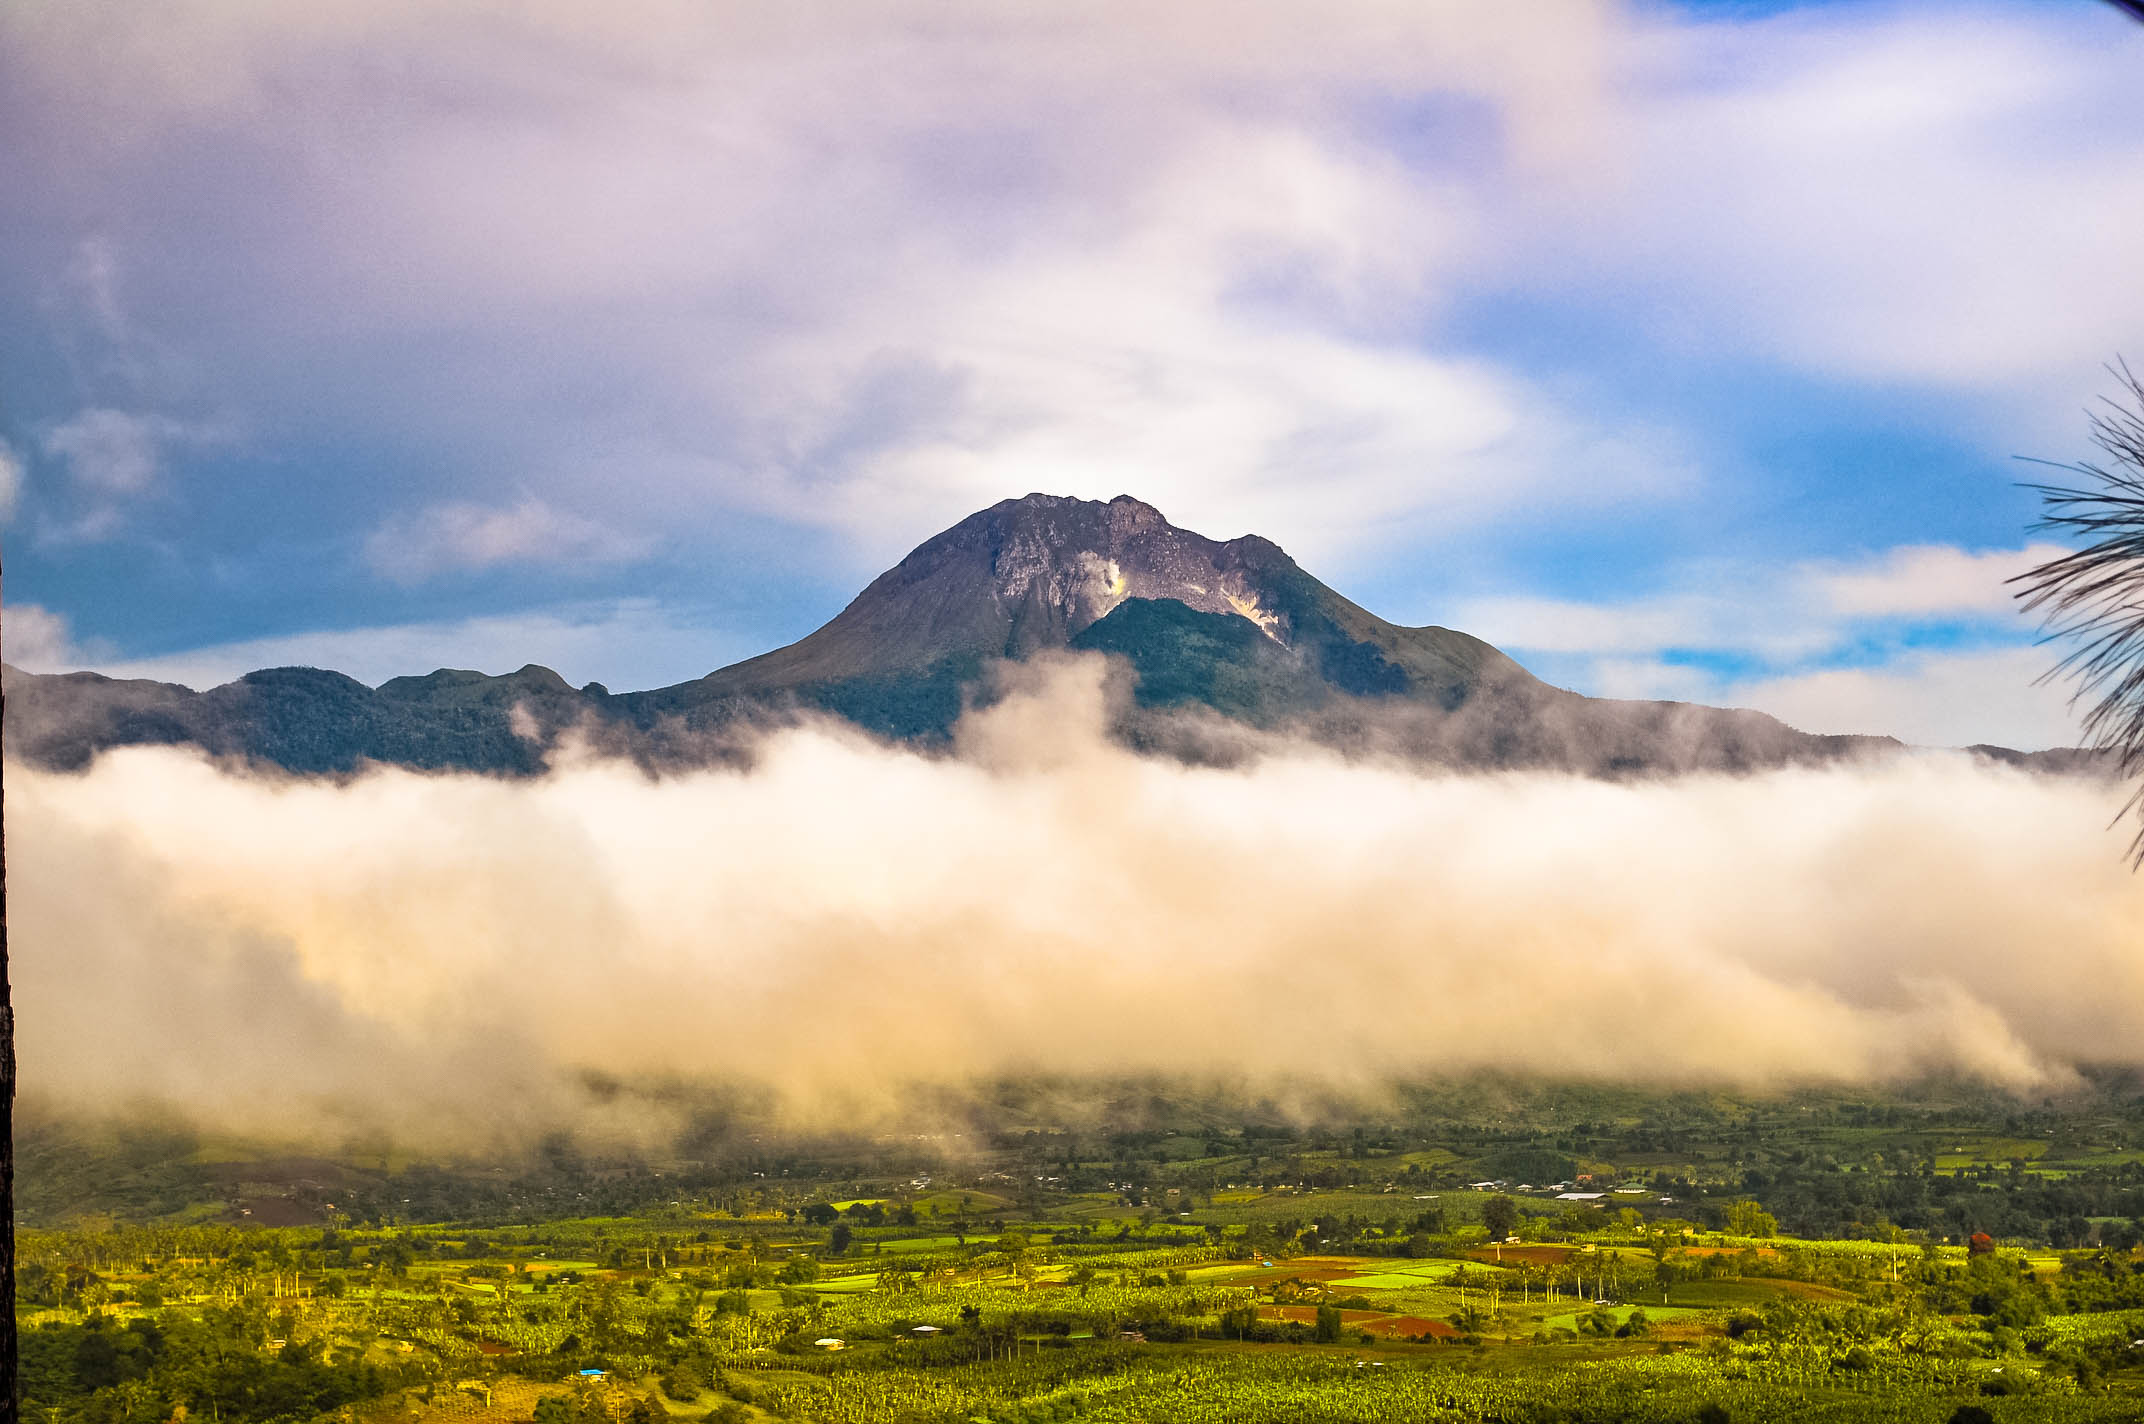 The peak of a lofty mountain (that of Mount Apo, the highest mountain in the Philippines), rises above the green plain and above a swath of white cloud